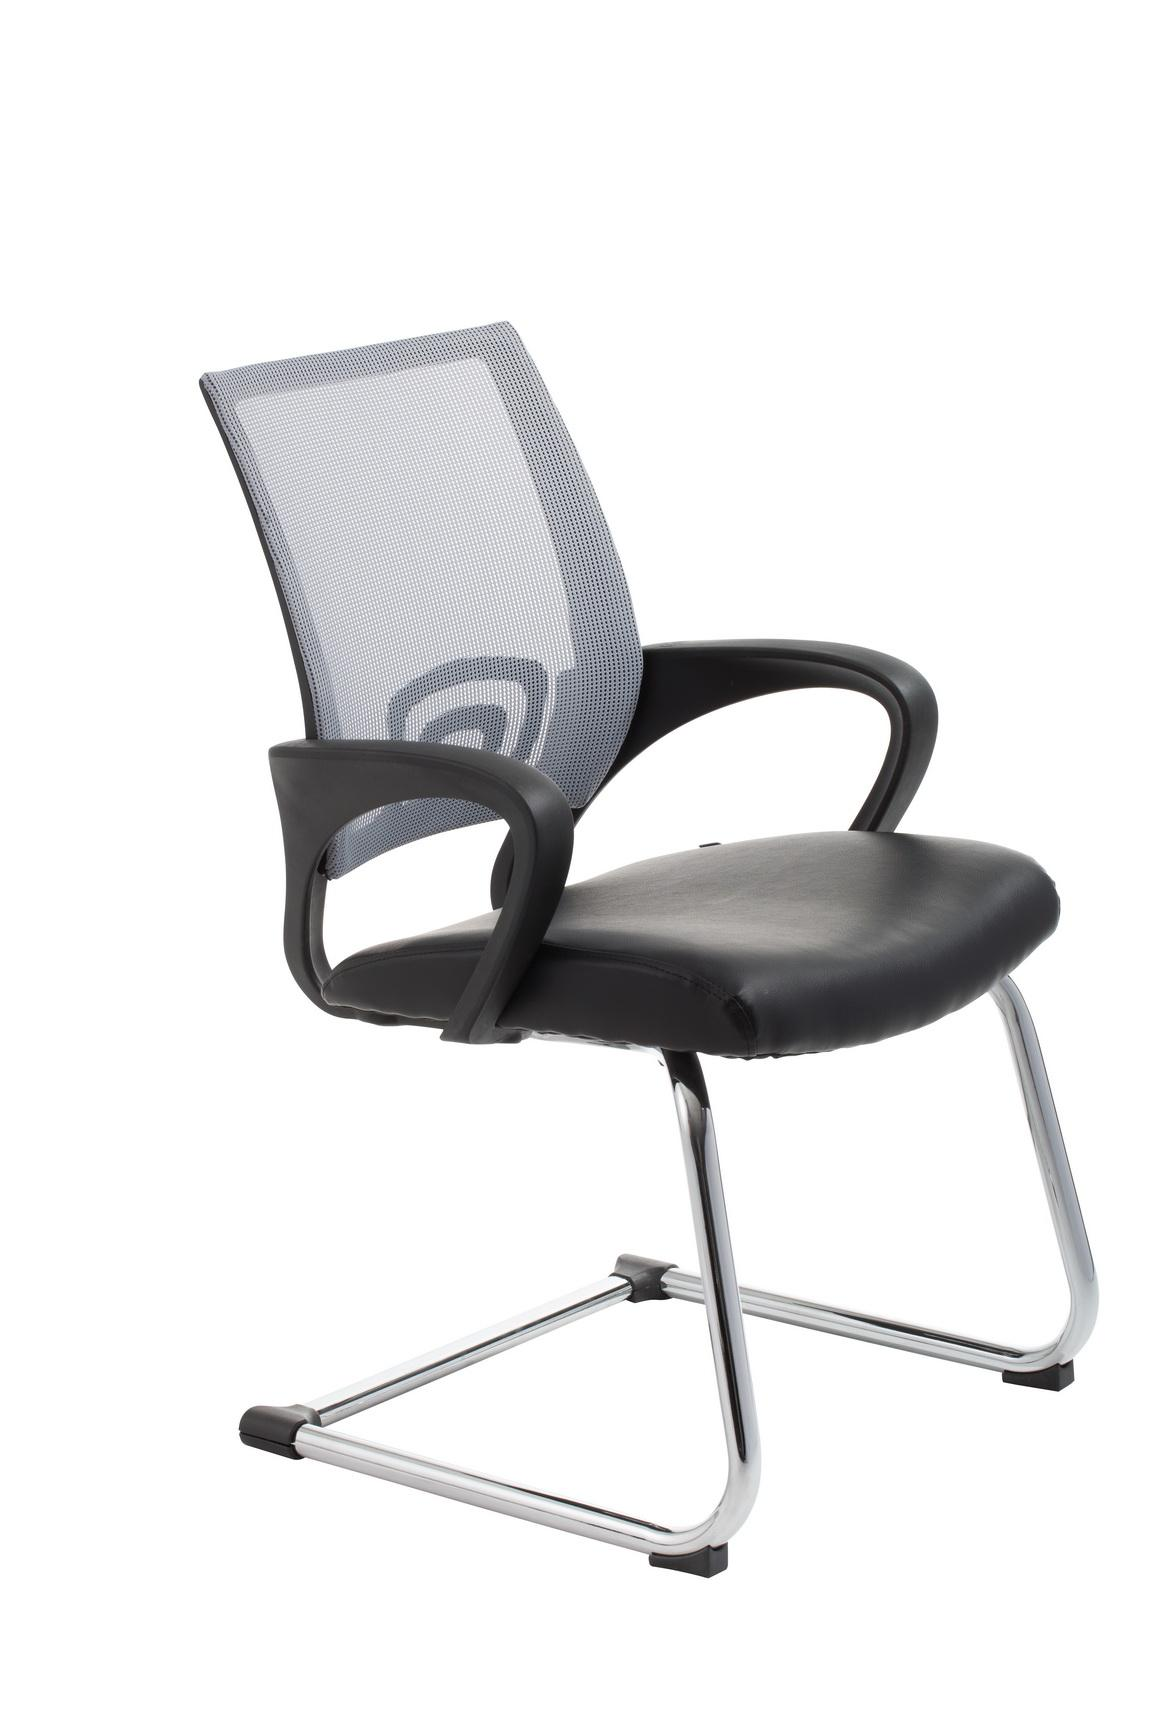 chair in silver office furniture store office furnitures office